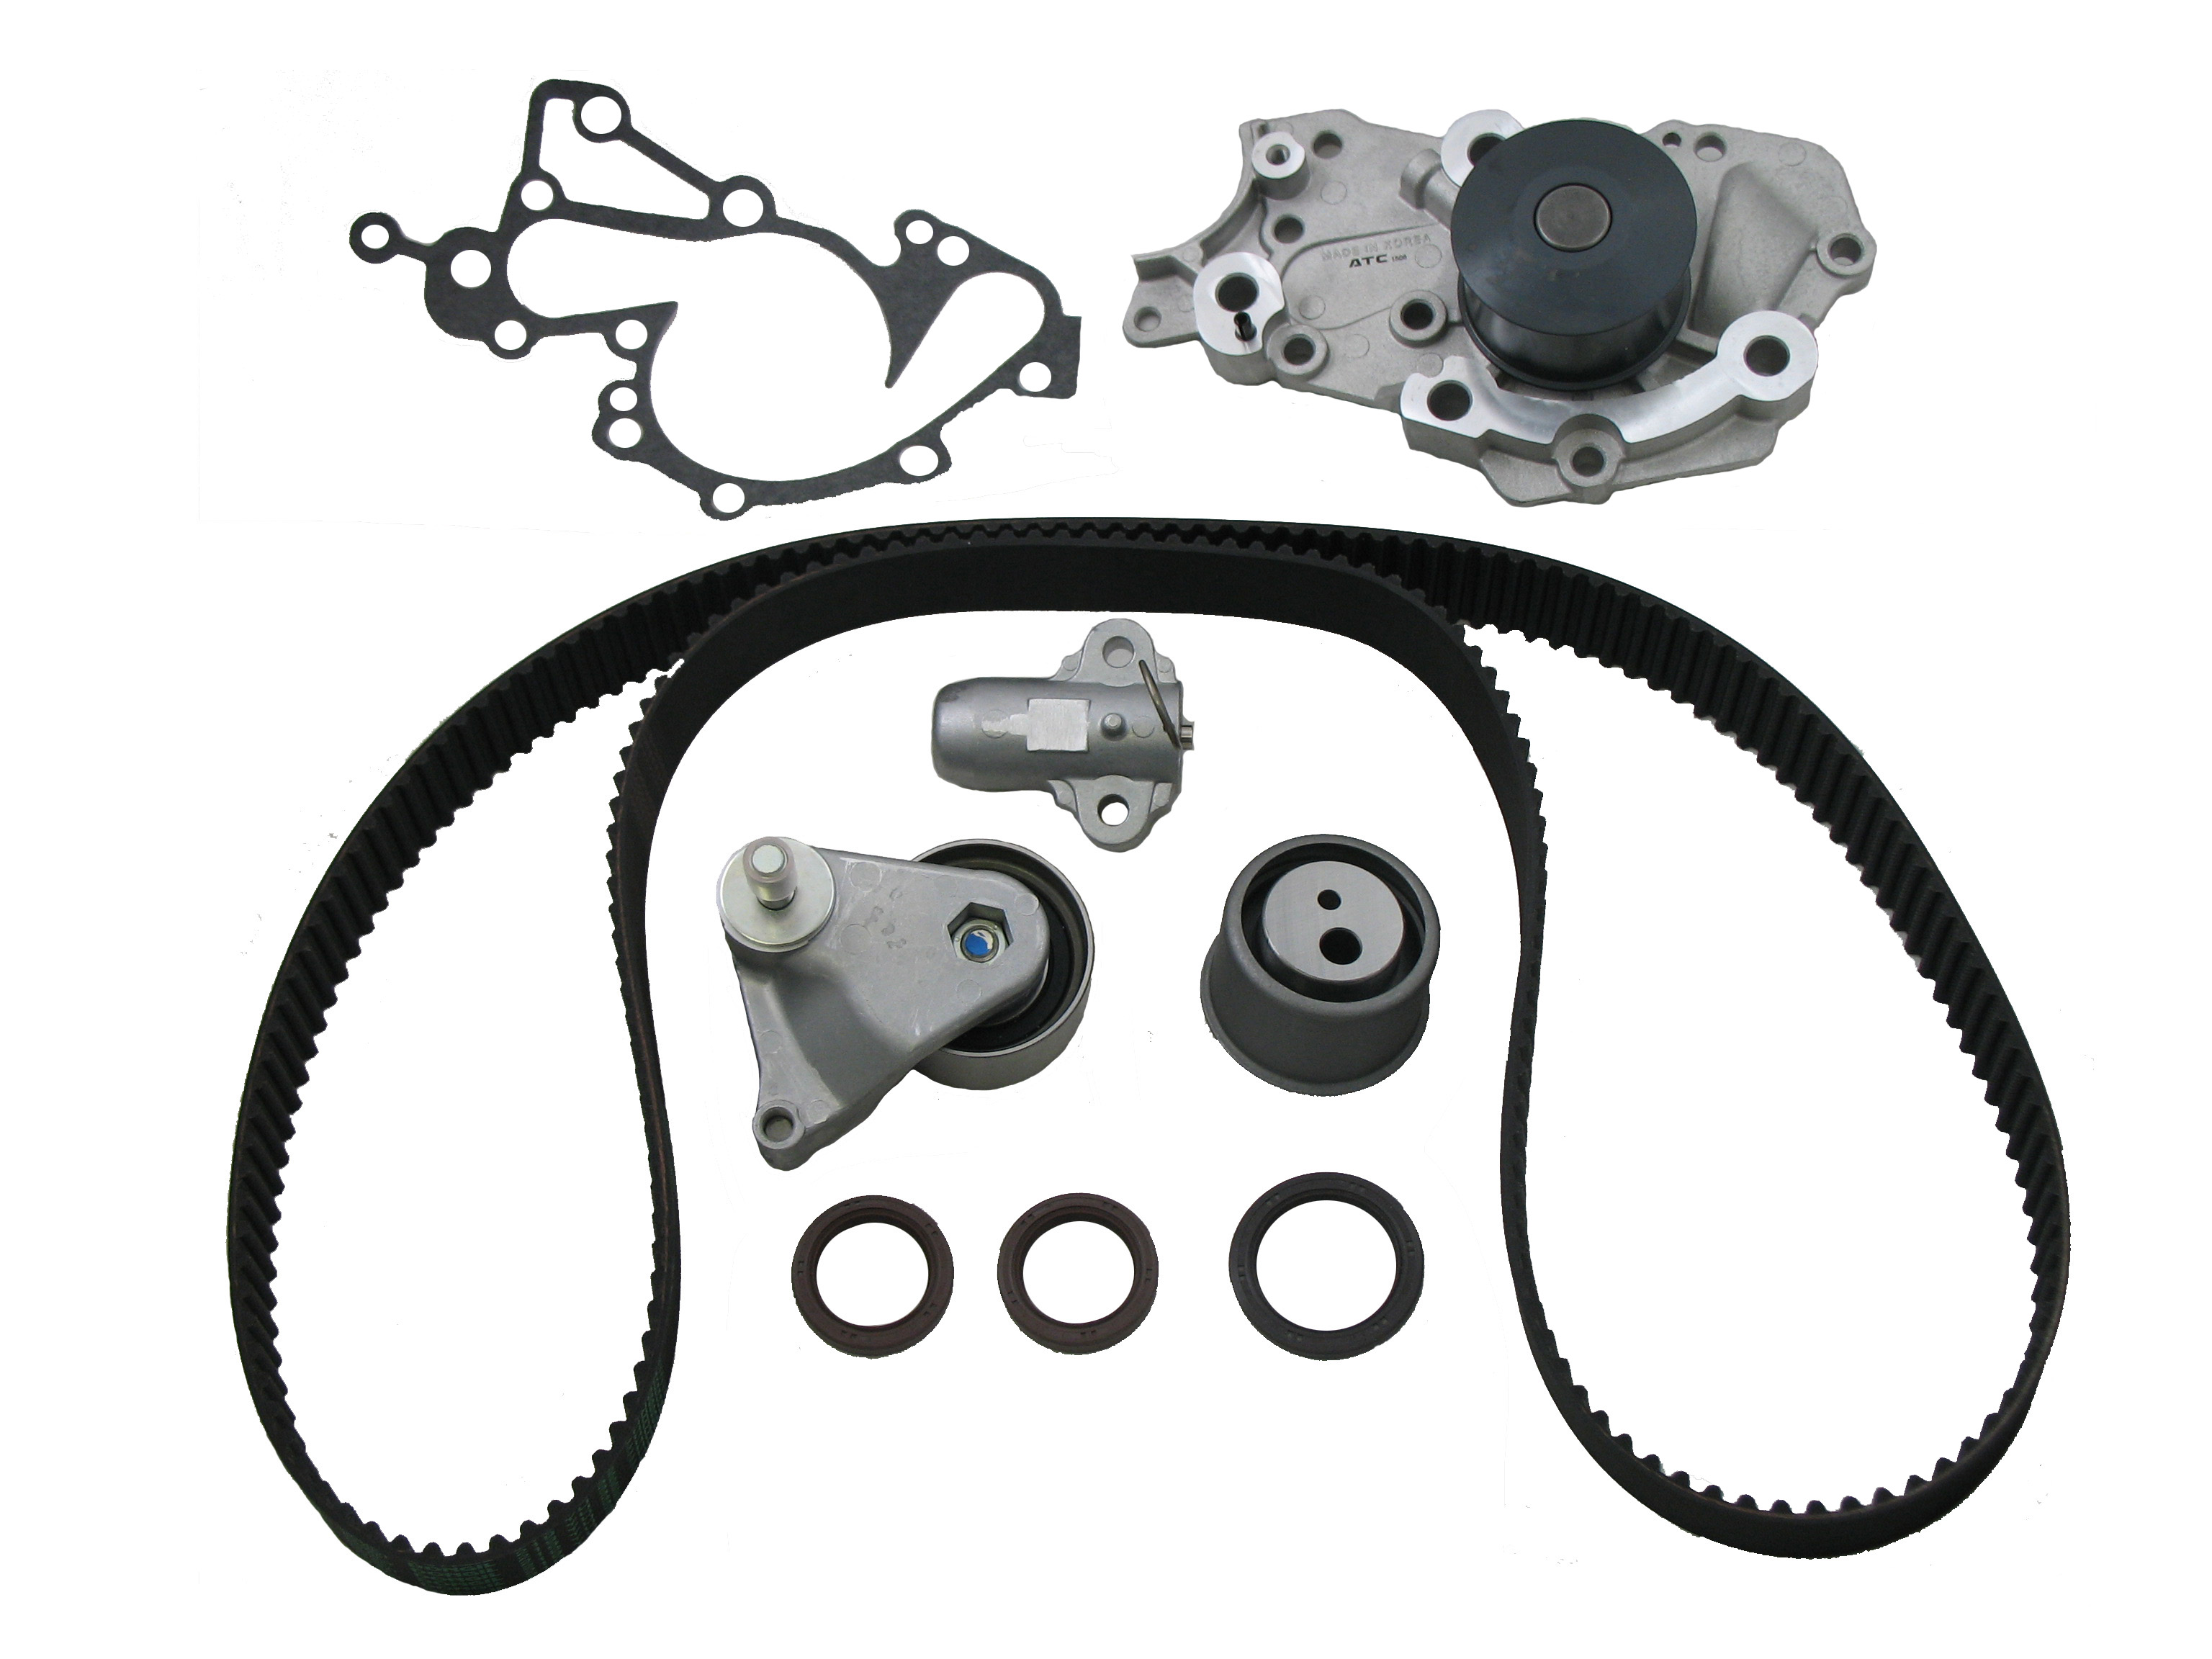 2007 Santa Fe Timing Belt Water Pump Question Hyundai 6146225 Kit H2483e001 Fits